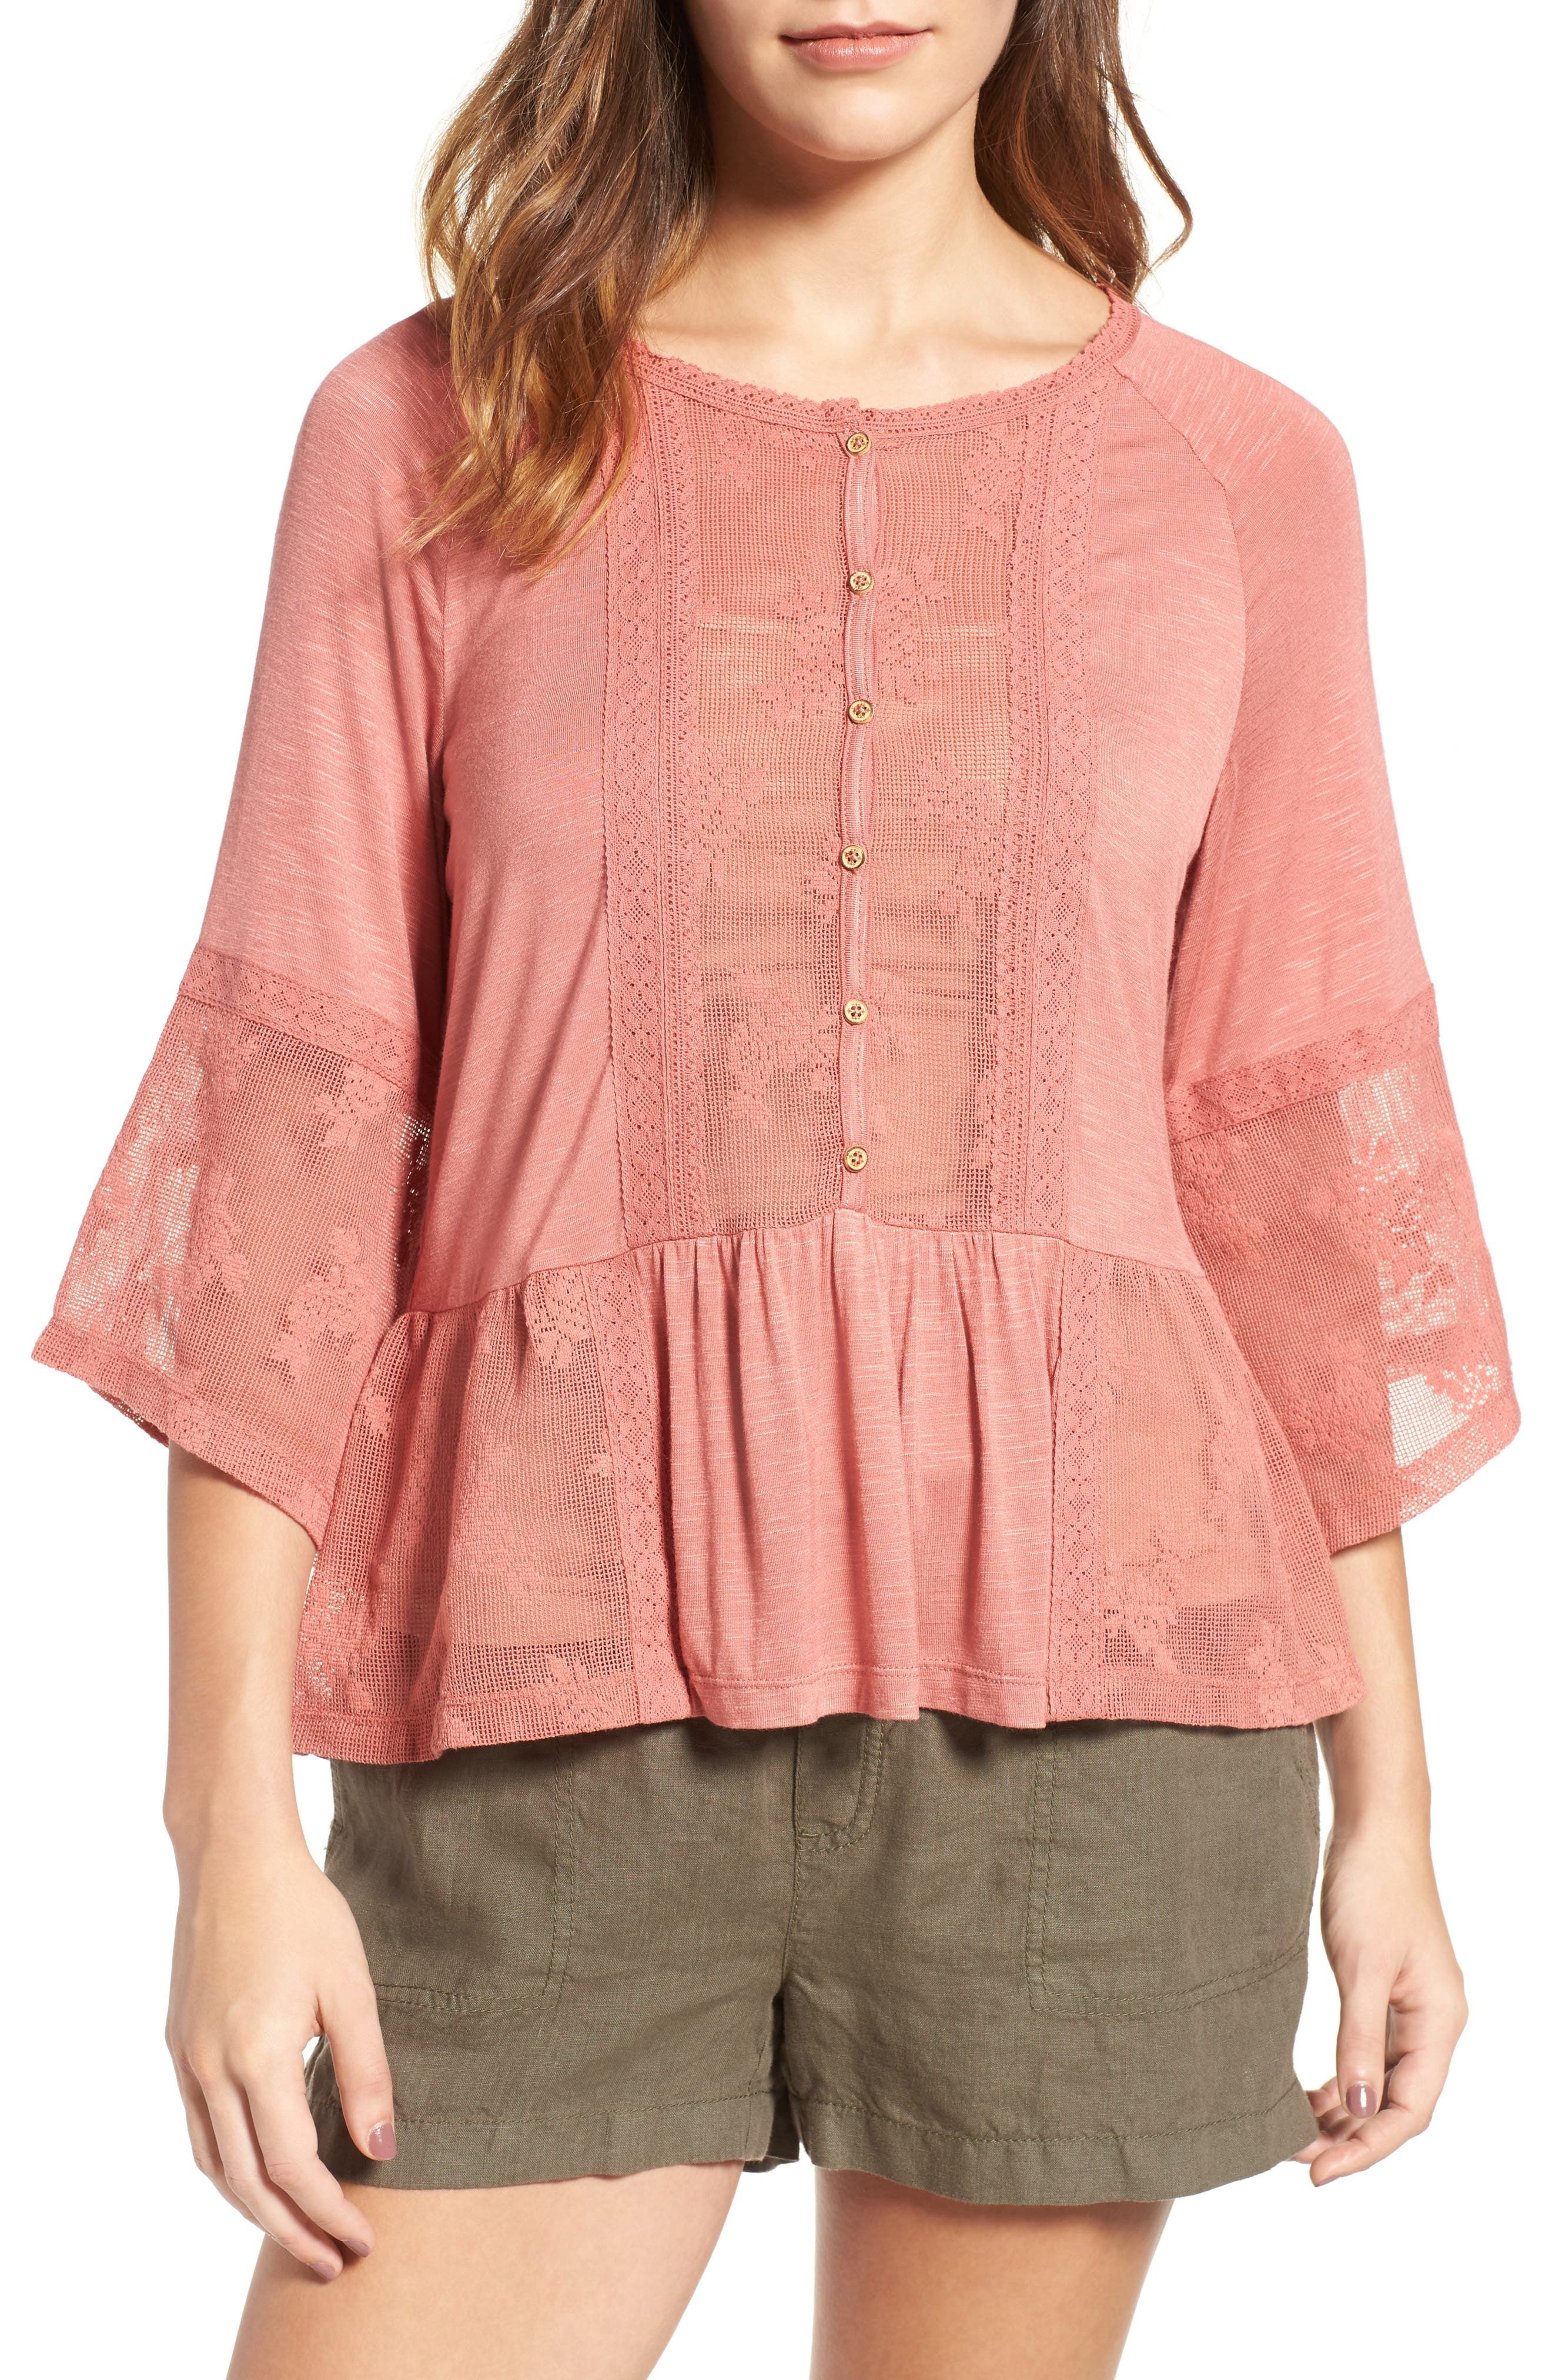 Main Image - Wit & Wisdom Mixed Media Flounce Top (Nordstrom Exclusive)